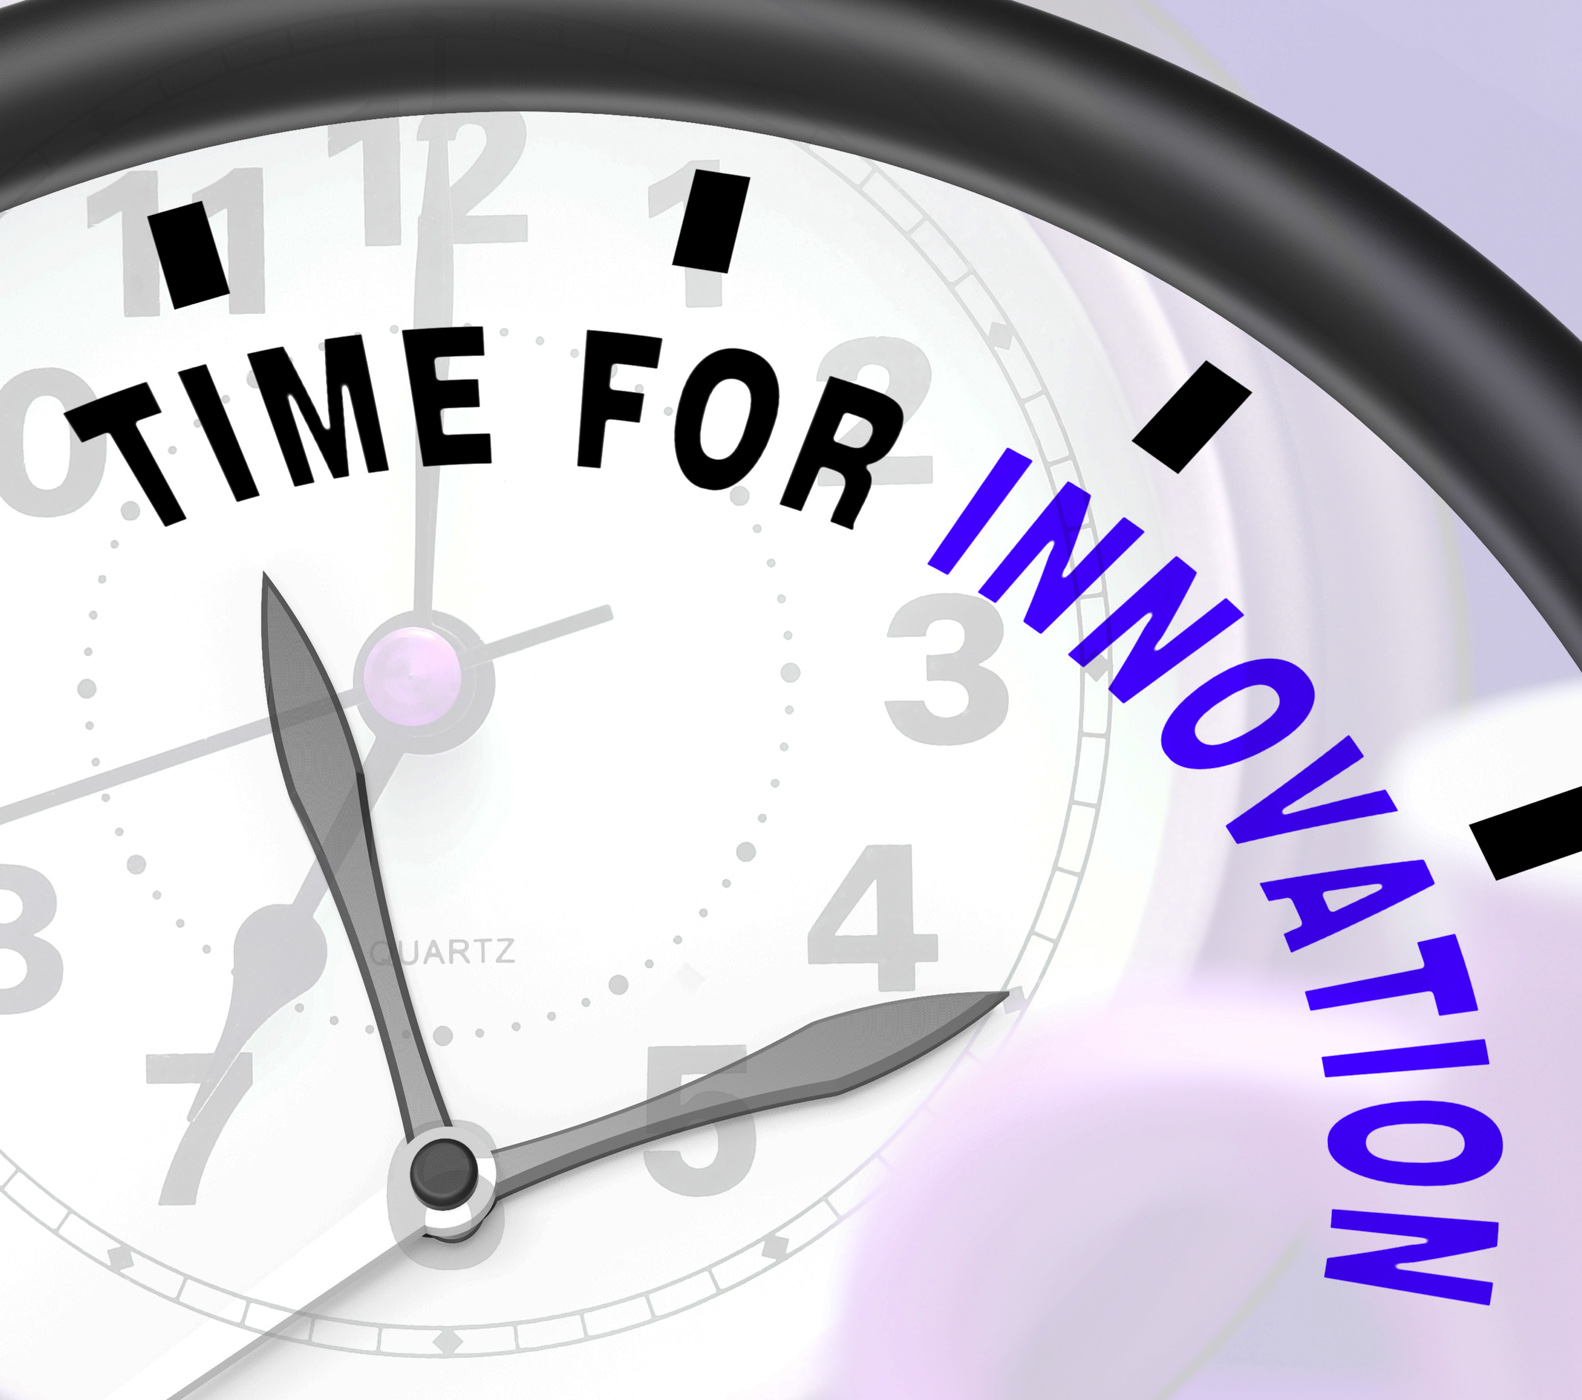 Time for innovation shows creative development and ingenuity photo